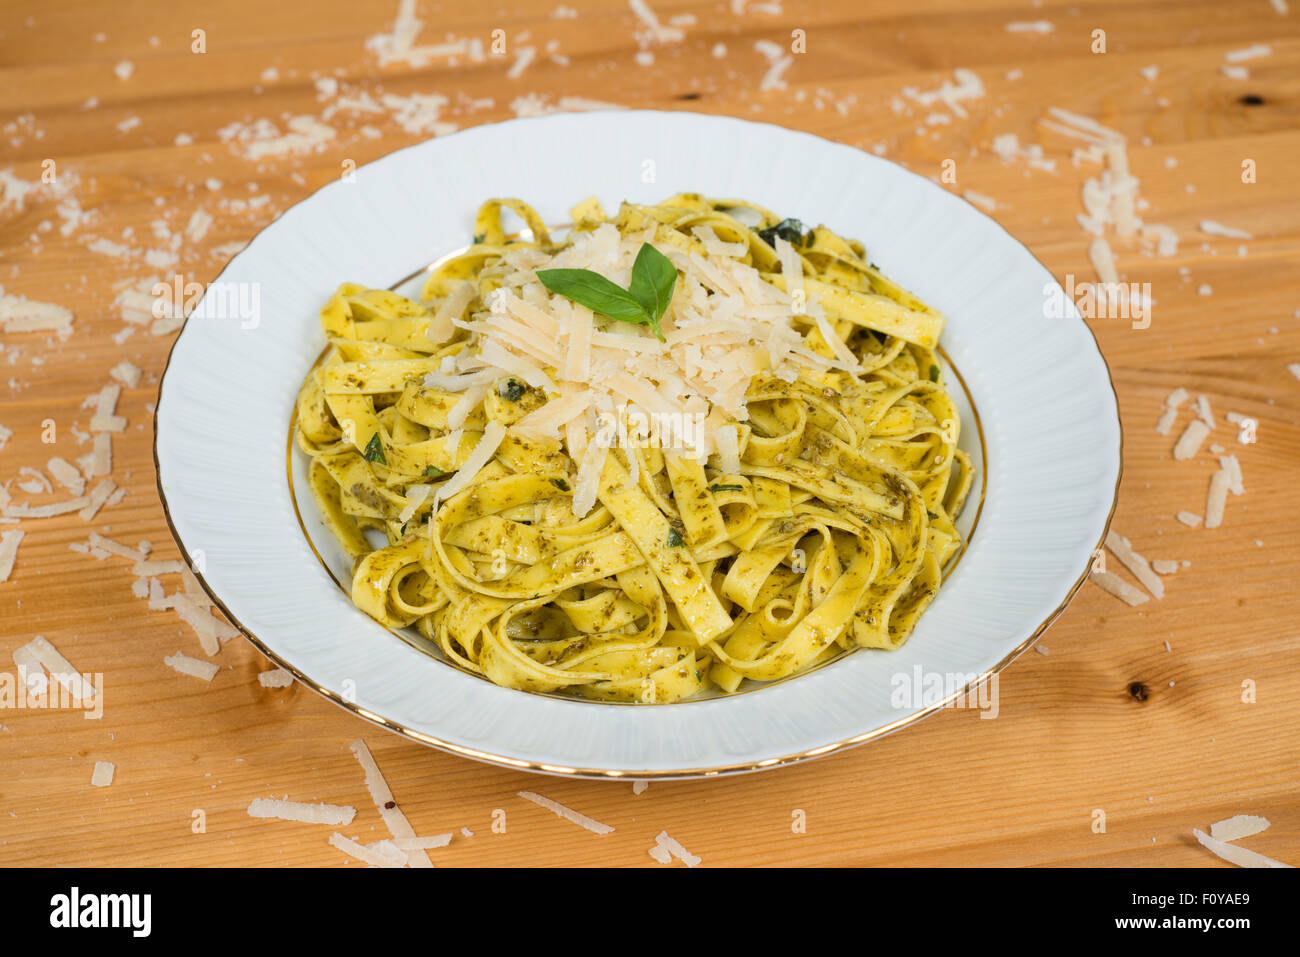 Tagliatelle pasta with pesto sauce and basil leafs on white plate, wood background - Stock Image